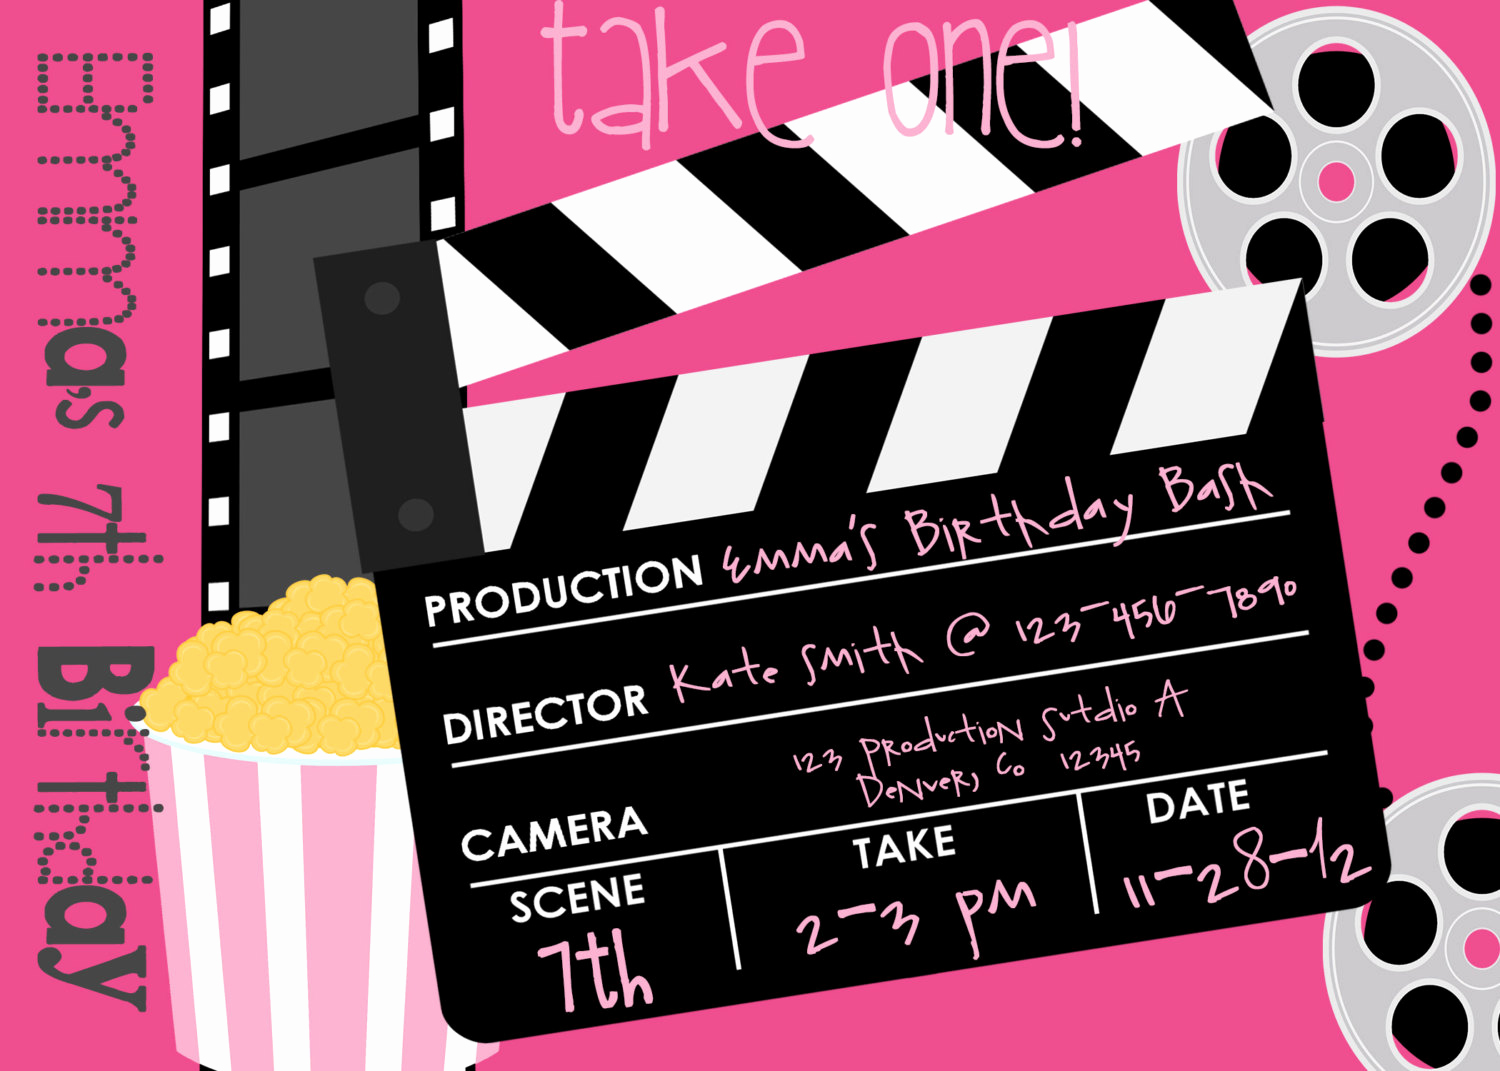 Movie Ticket Invitation Template Free Best Of Movie themed Party Invitations Free Cloudinvitation